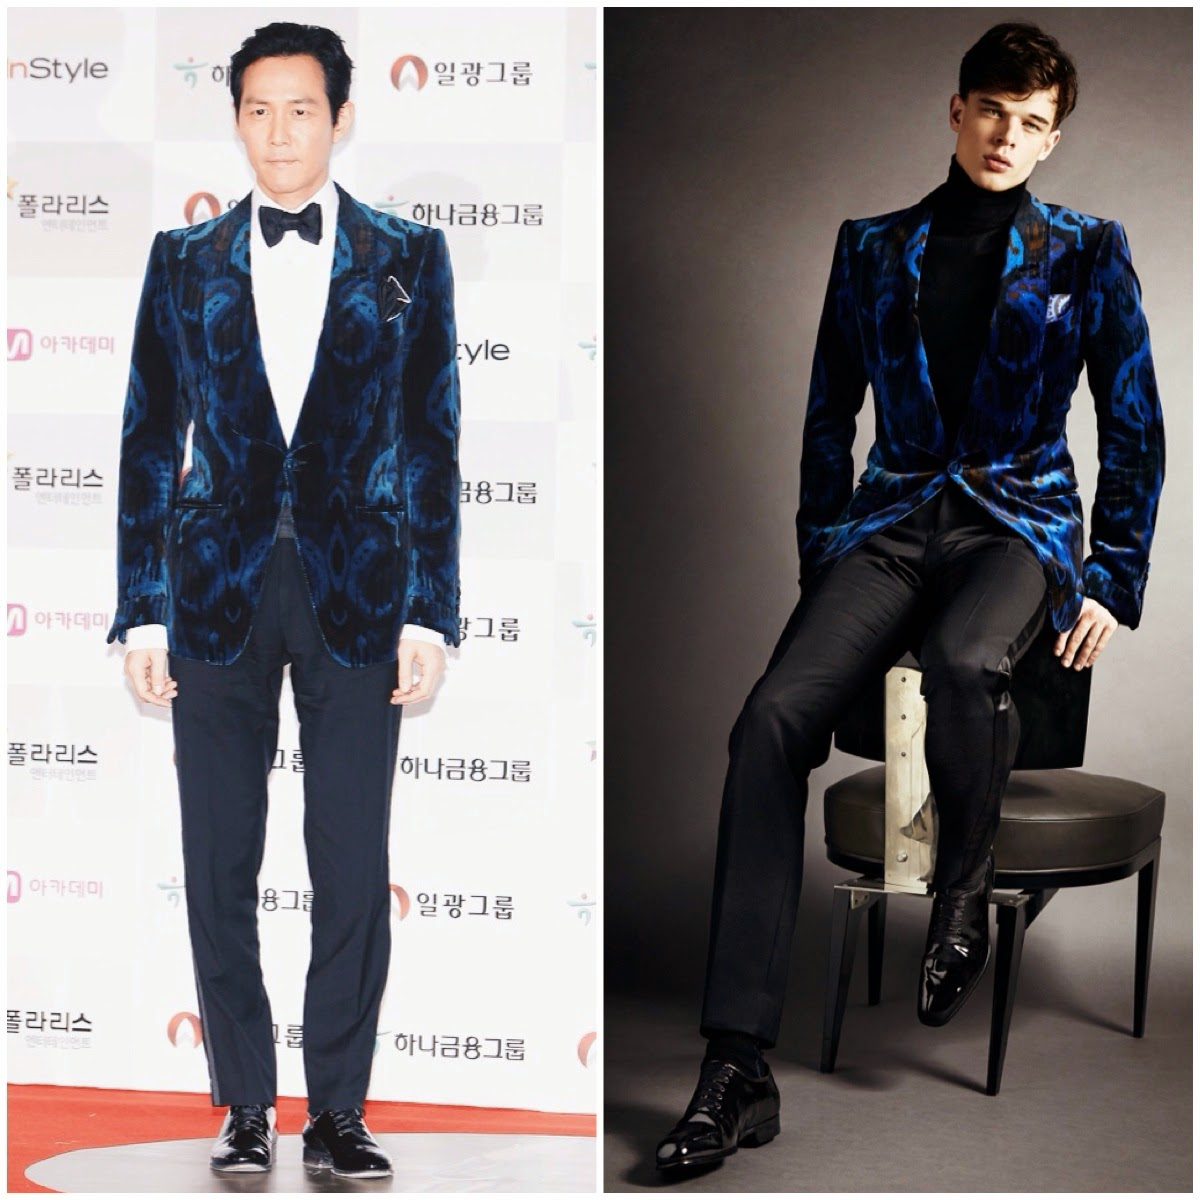 Lee Jung-Jae [이정재 / 李政宰] wears Tom Ford velvet ikat print tuxedo jacket to 51st Daejong Film Awards 21st November 2014 Seoul South Korea